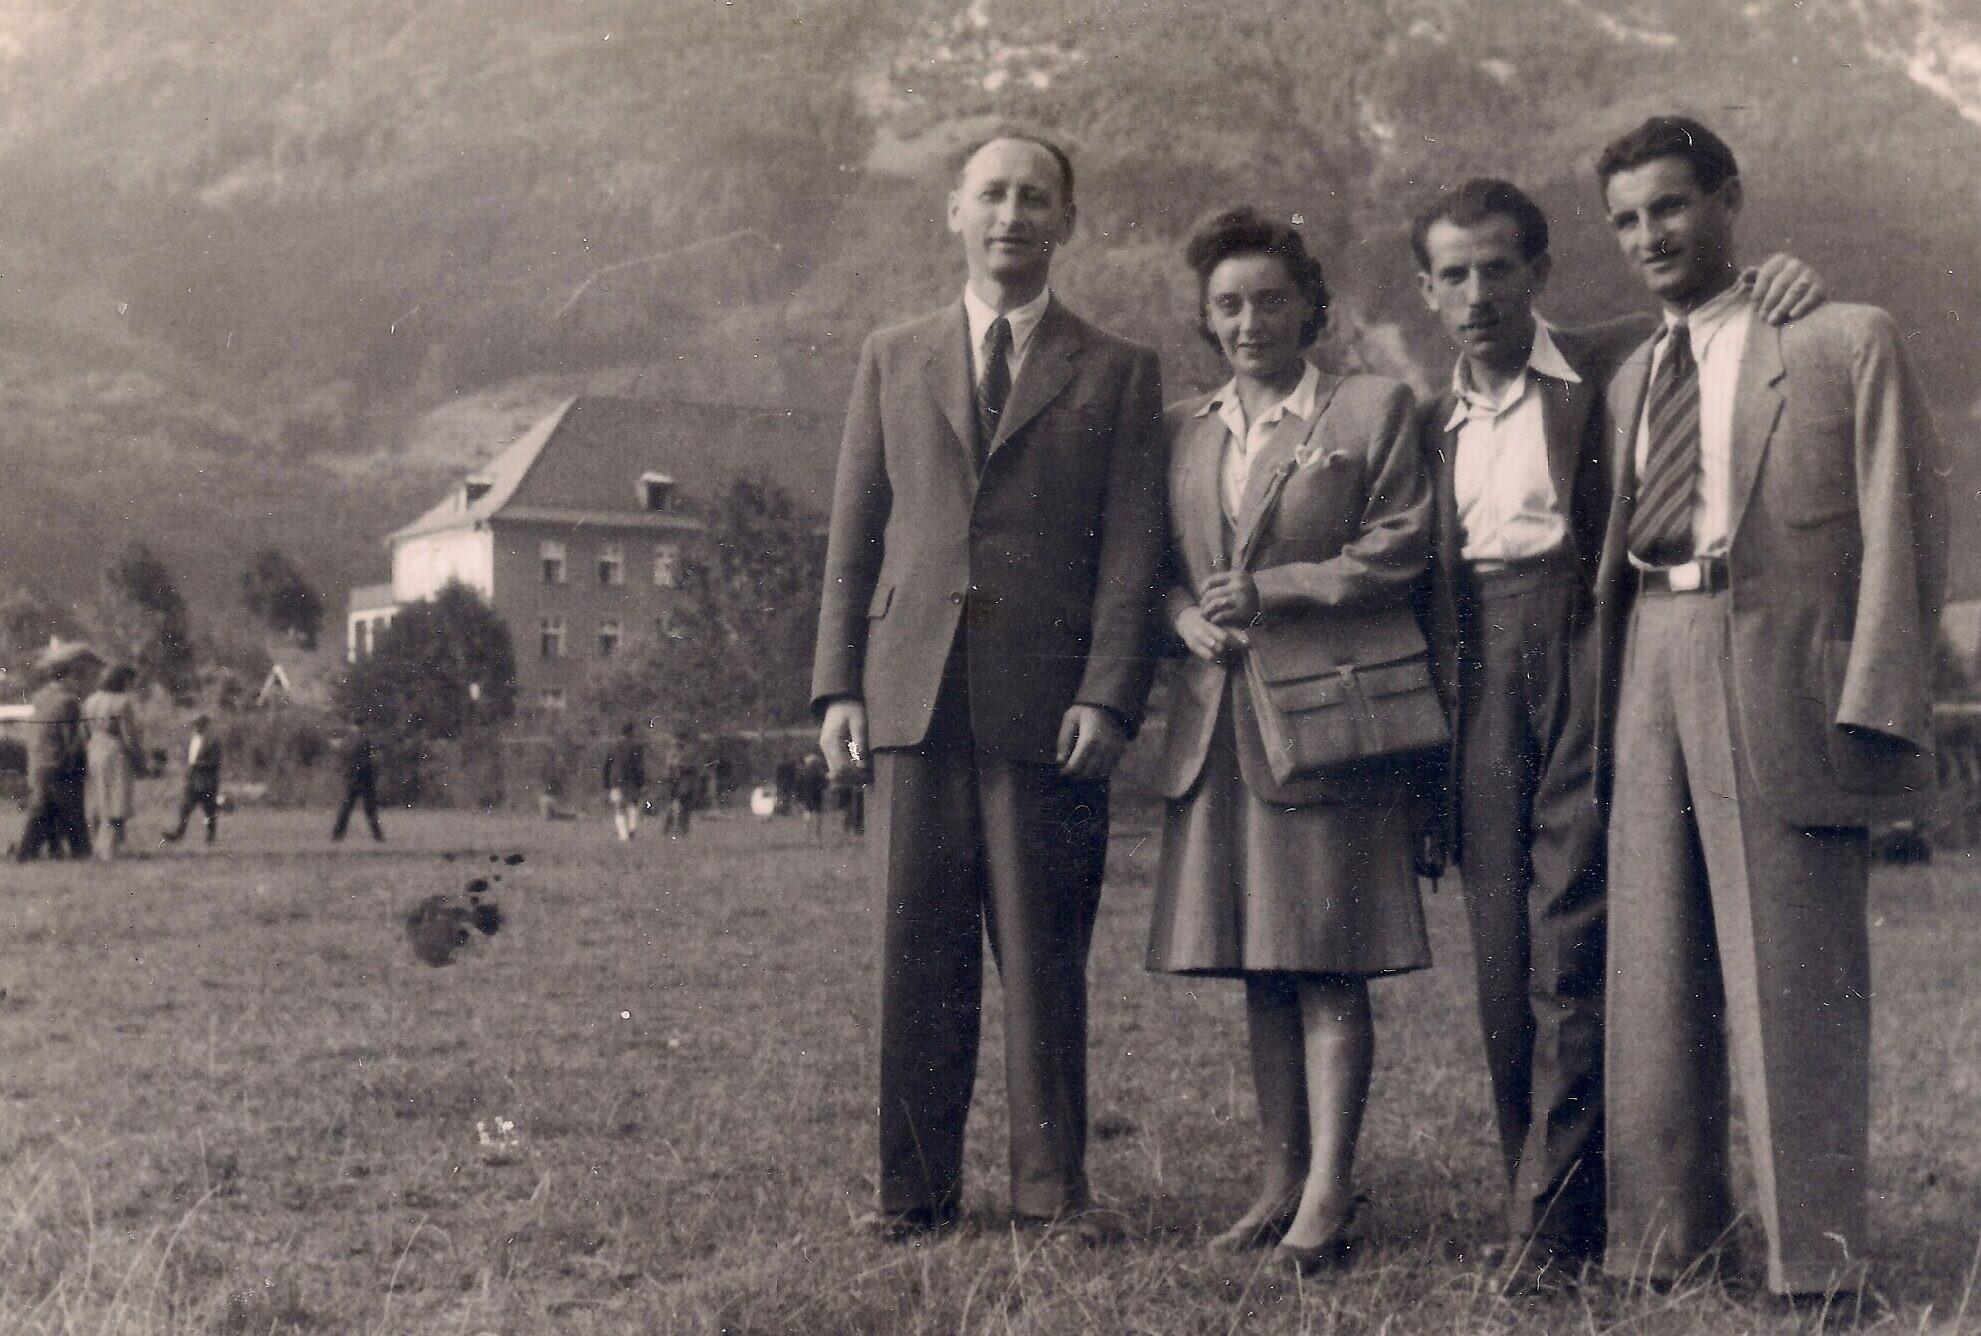 Regina and Joseph Dichek, at right, with the Bad Reichenhall displaced persons camp in the background, Germany, circa 1946-1949. The clothing may not have fit well, but it was well-made and clean, and in most photos Regina and Joseph Dichek are seen wearing different outfits, thanks to the generous donations of the JDC and other relief organizations. (Courtesy Bernard Dichek)